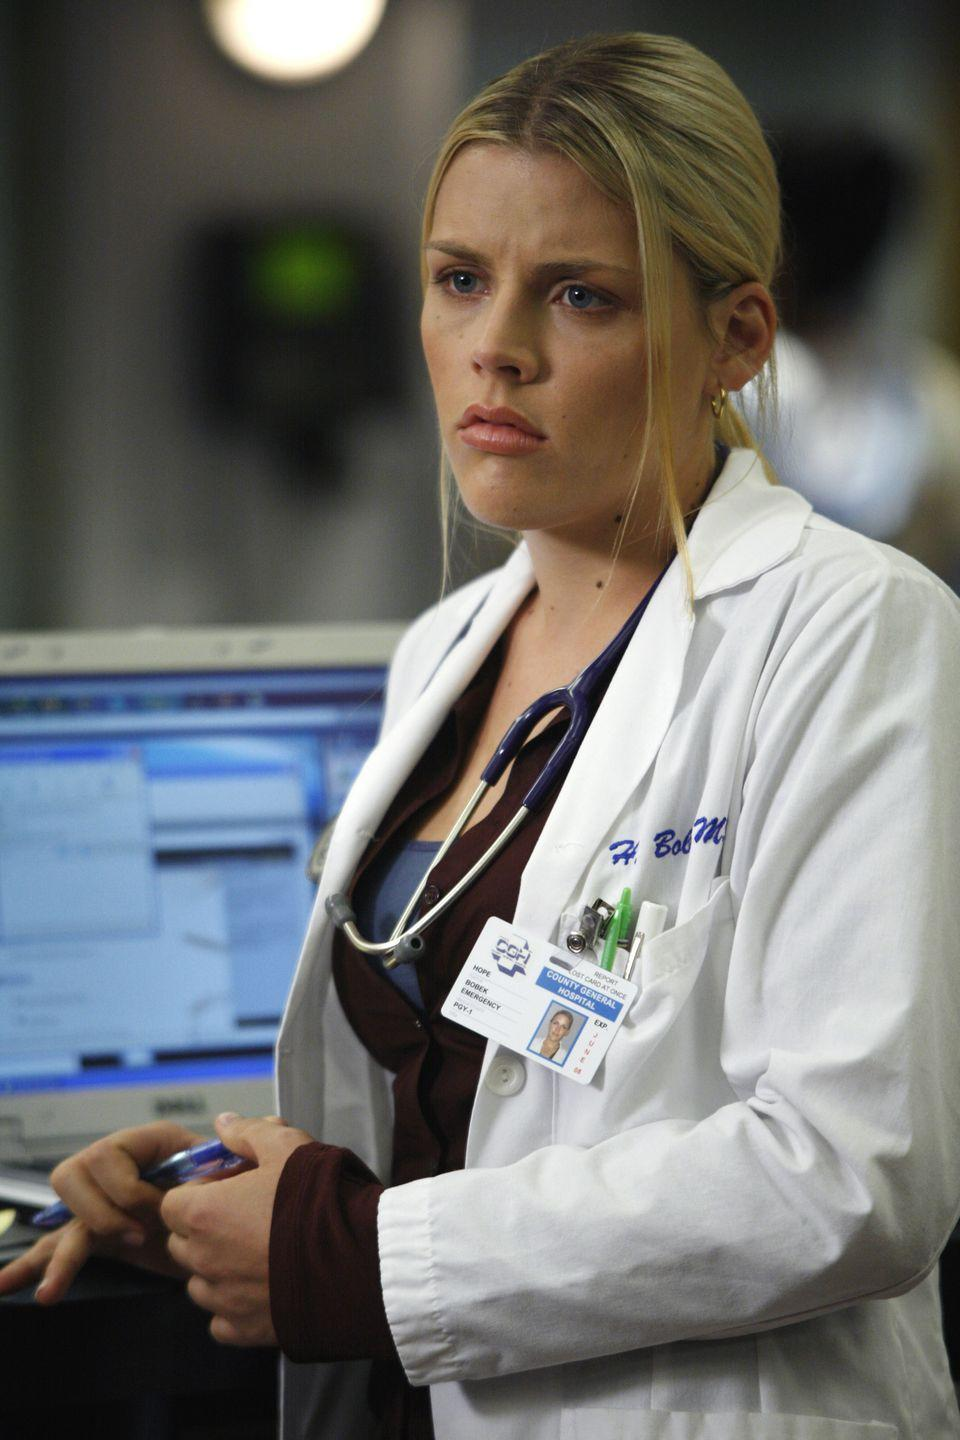 <p>From 2006 until 2007, Busy Philipps joined the medical staff at County General as Dr. Hope Bobeck. The actress had already gained notoriety on shows like <em>Freaks and Geeks </em>and <em>Dawson's Creek</em>. </p>